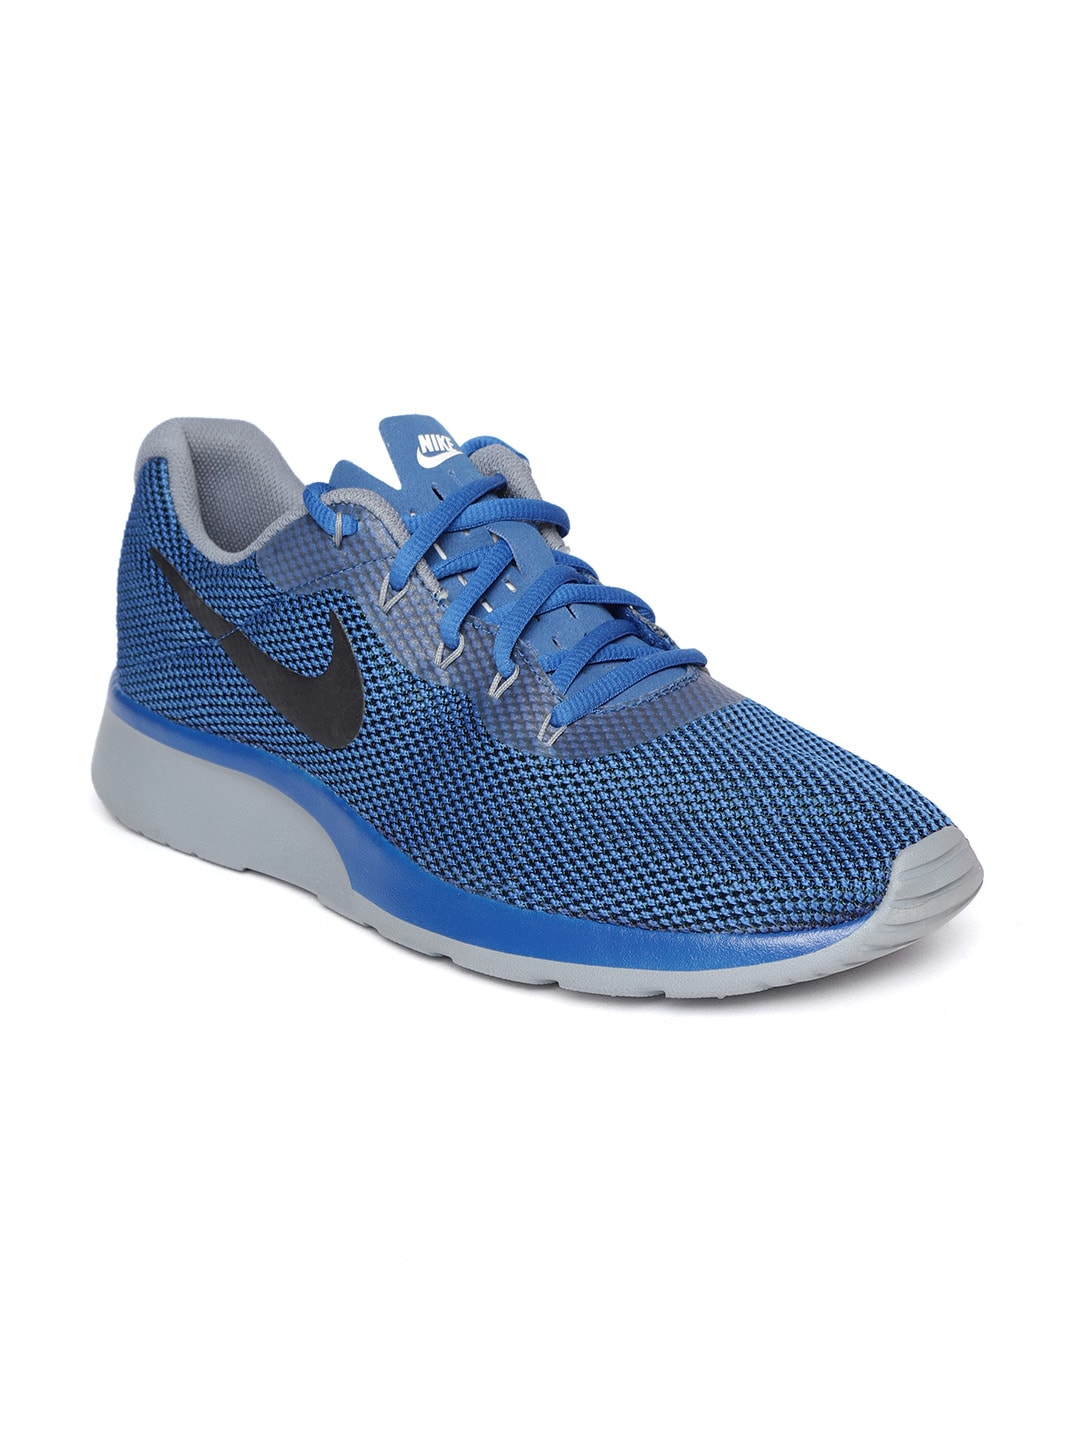 detailed look c983b 32589 Nike - Shop for Nike Apparels Online in India  Myntra